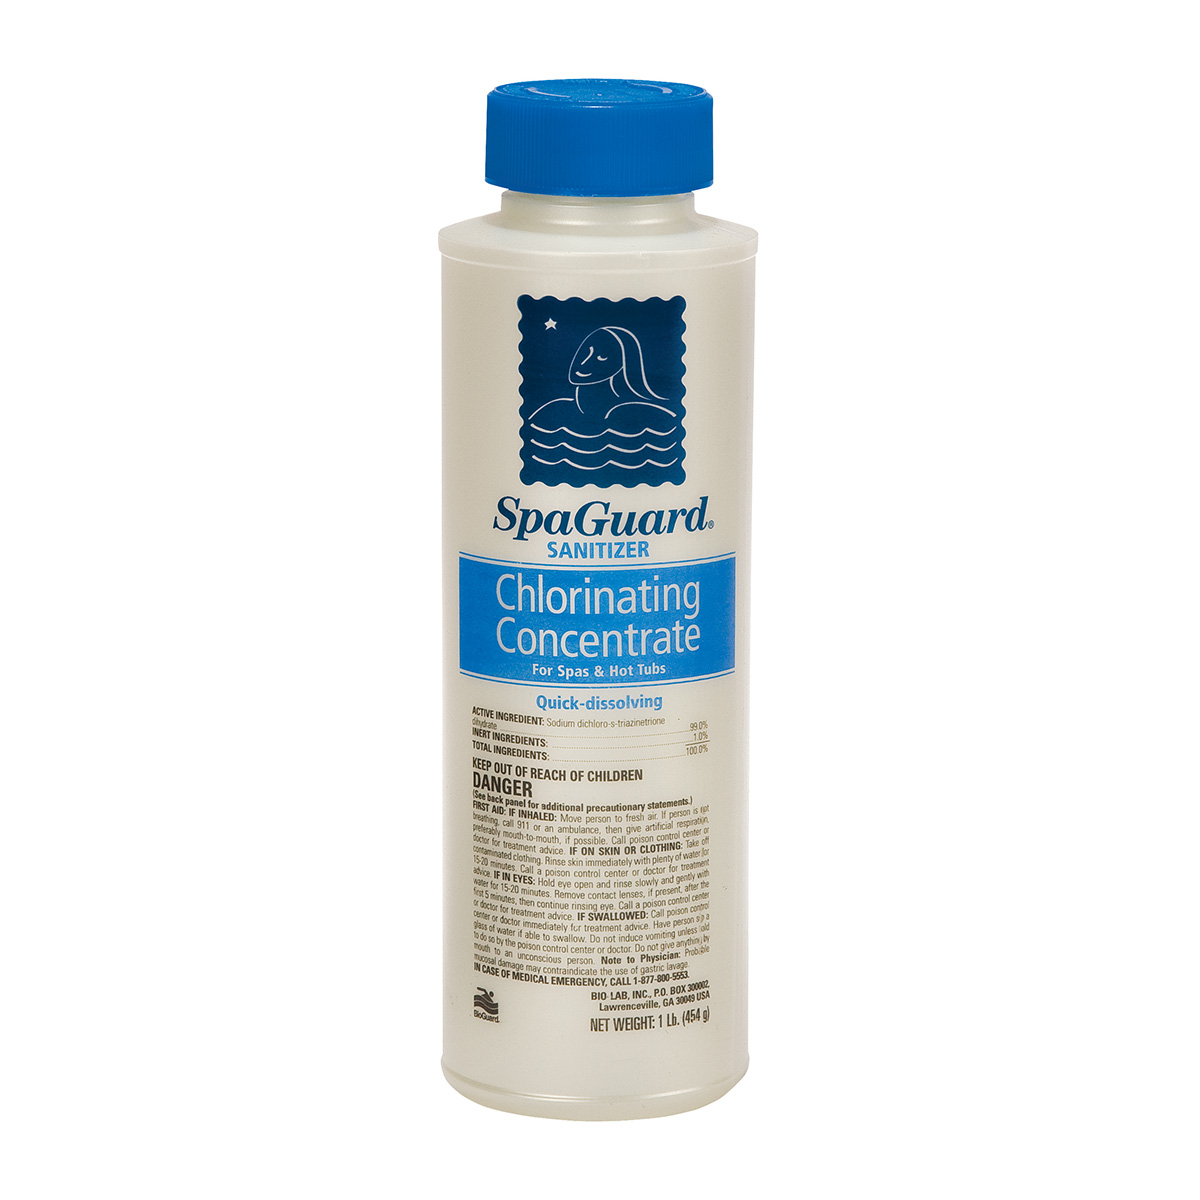 Chlorinating Concentrate